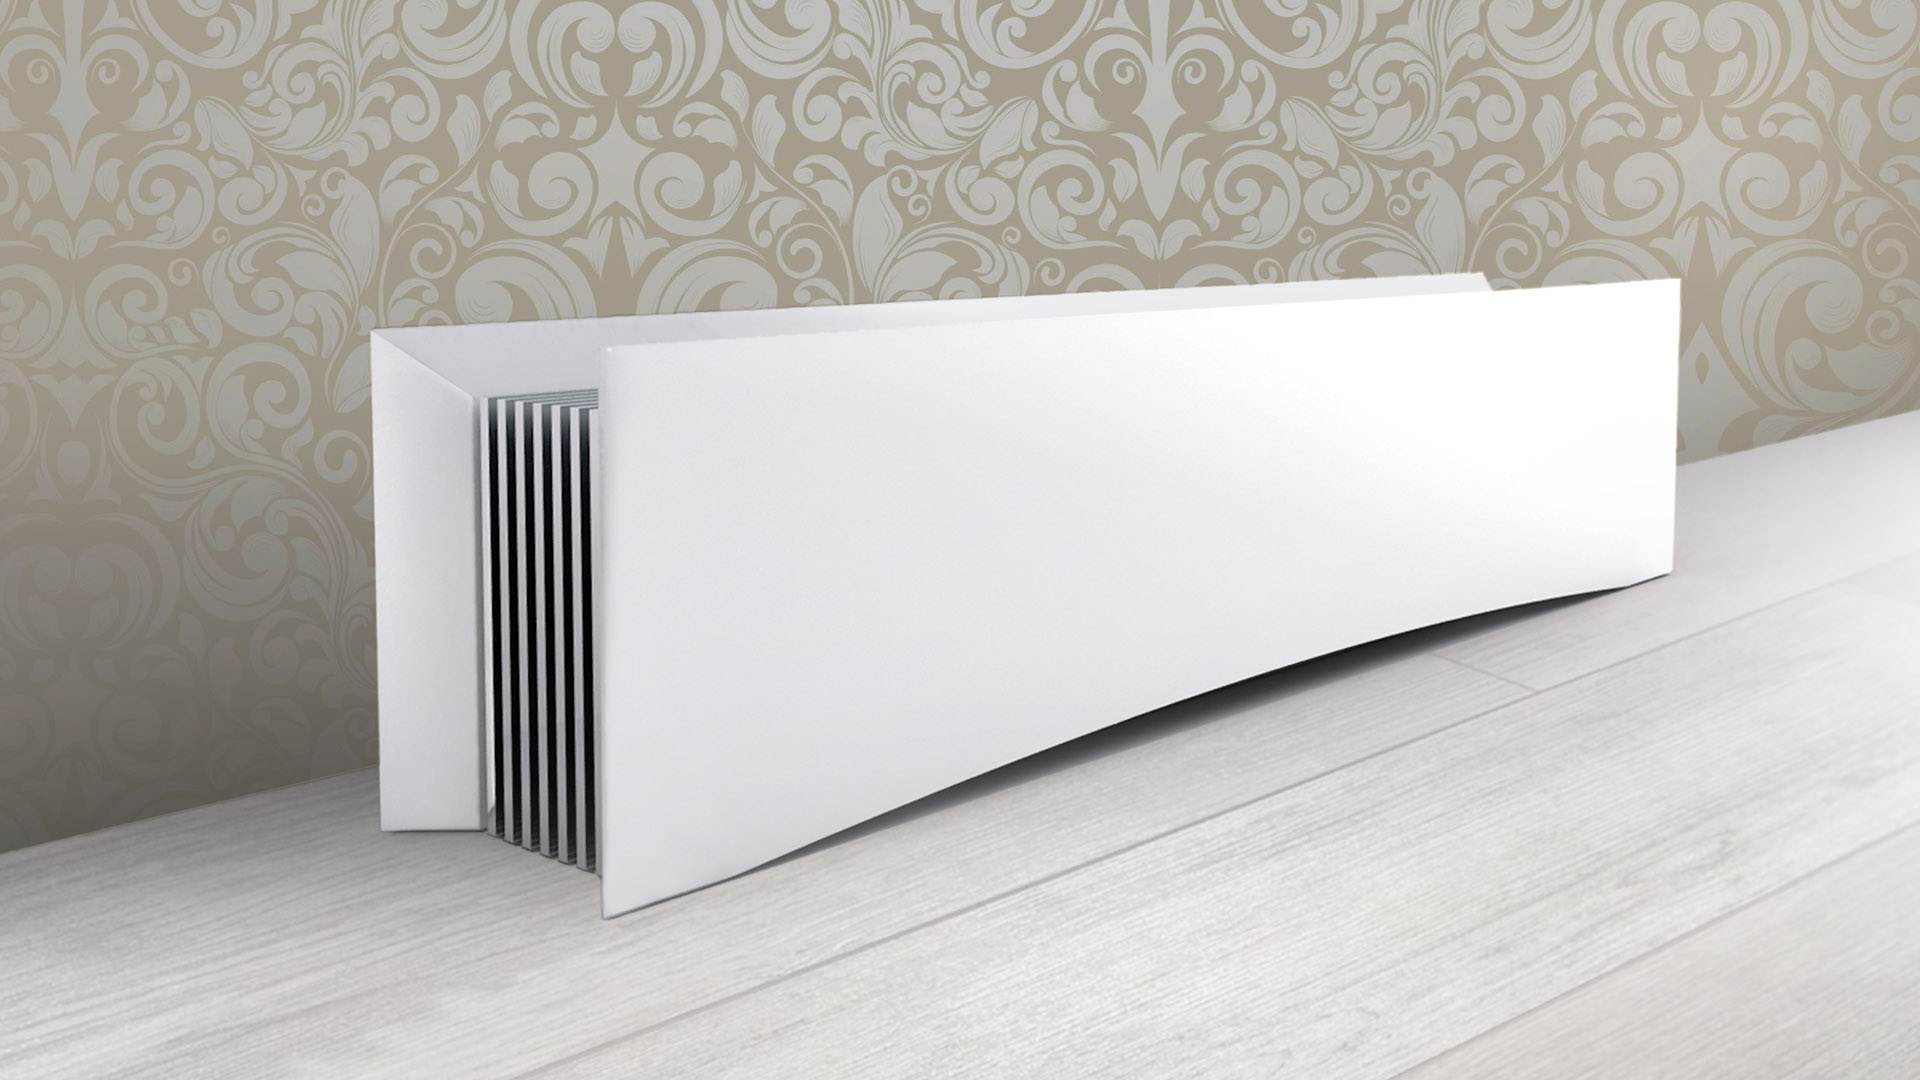 FLOOR radiator DLIGNE